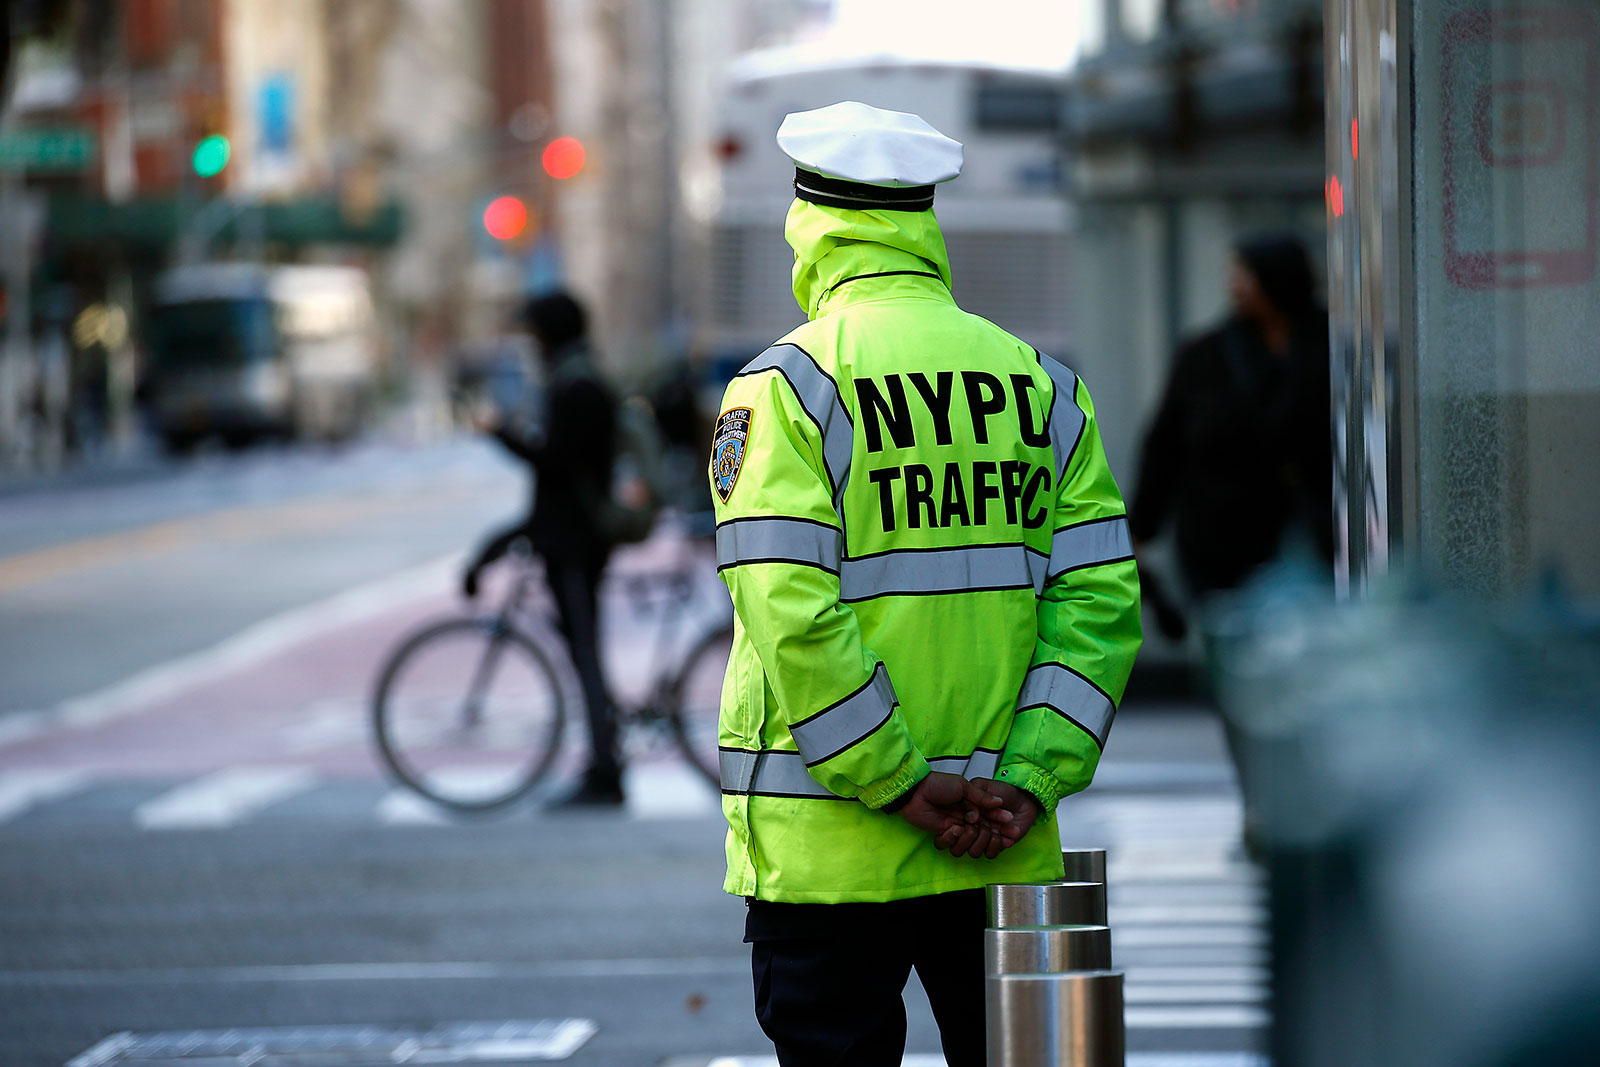 An NYPD traffic officer stands on 23rd street in New York City on April 1.